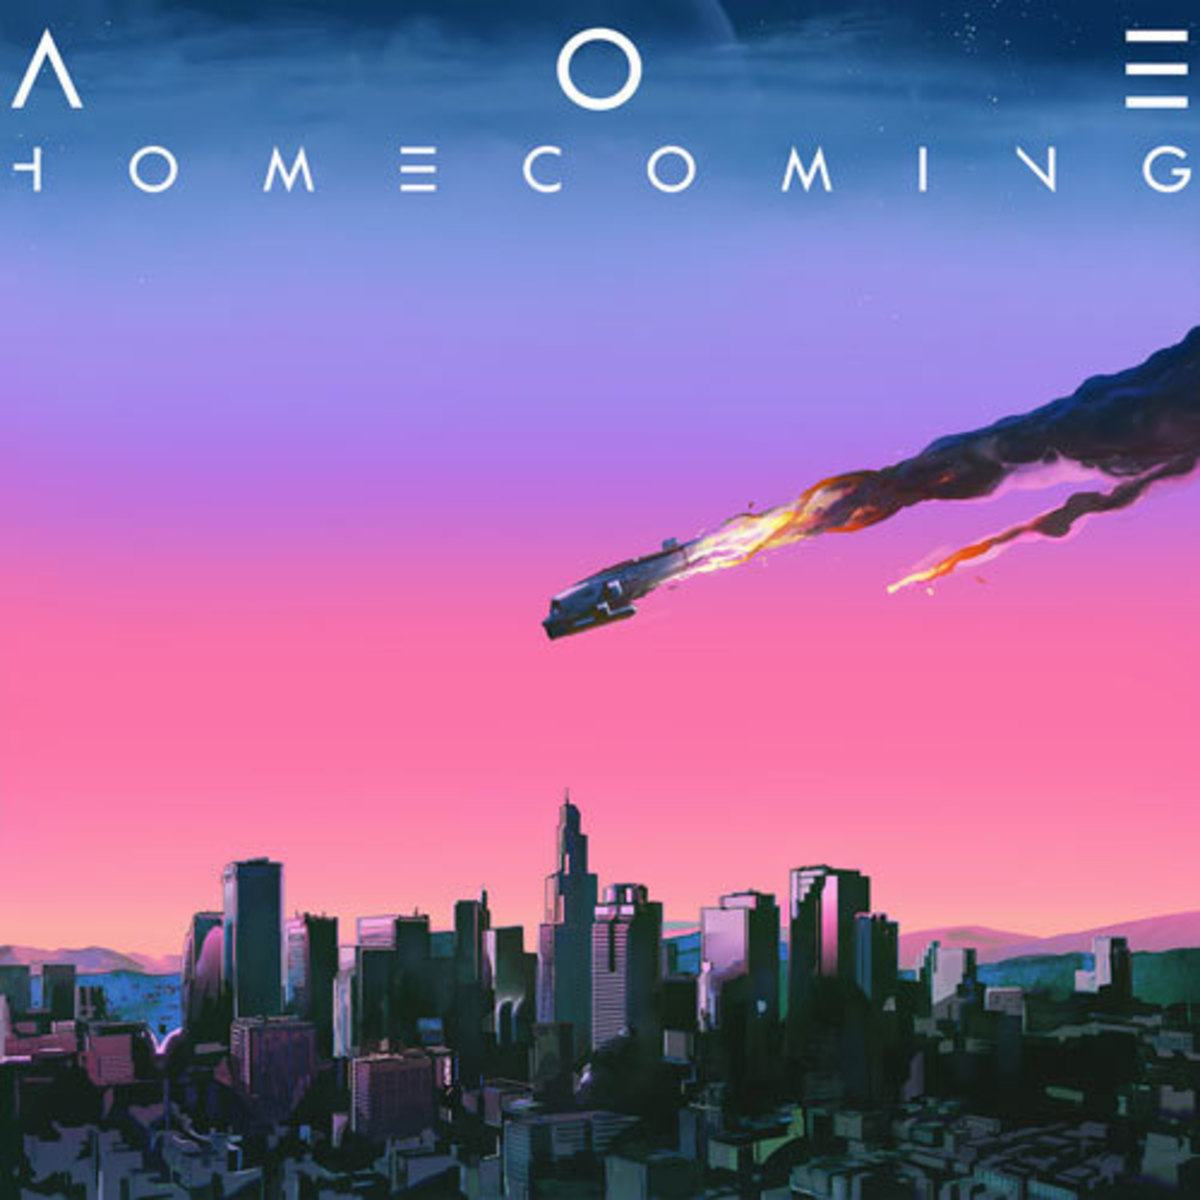 aoe-homecoming-ep.jpg